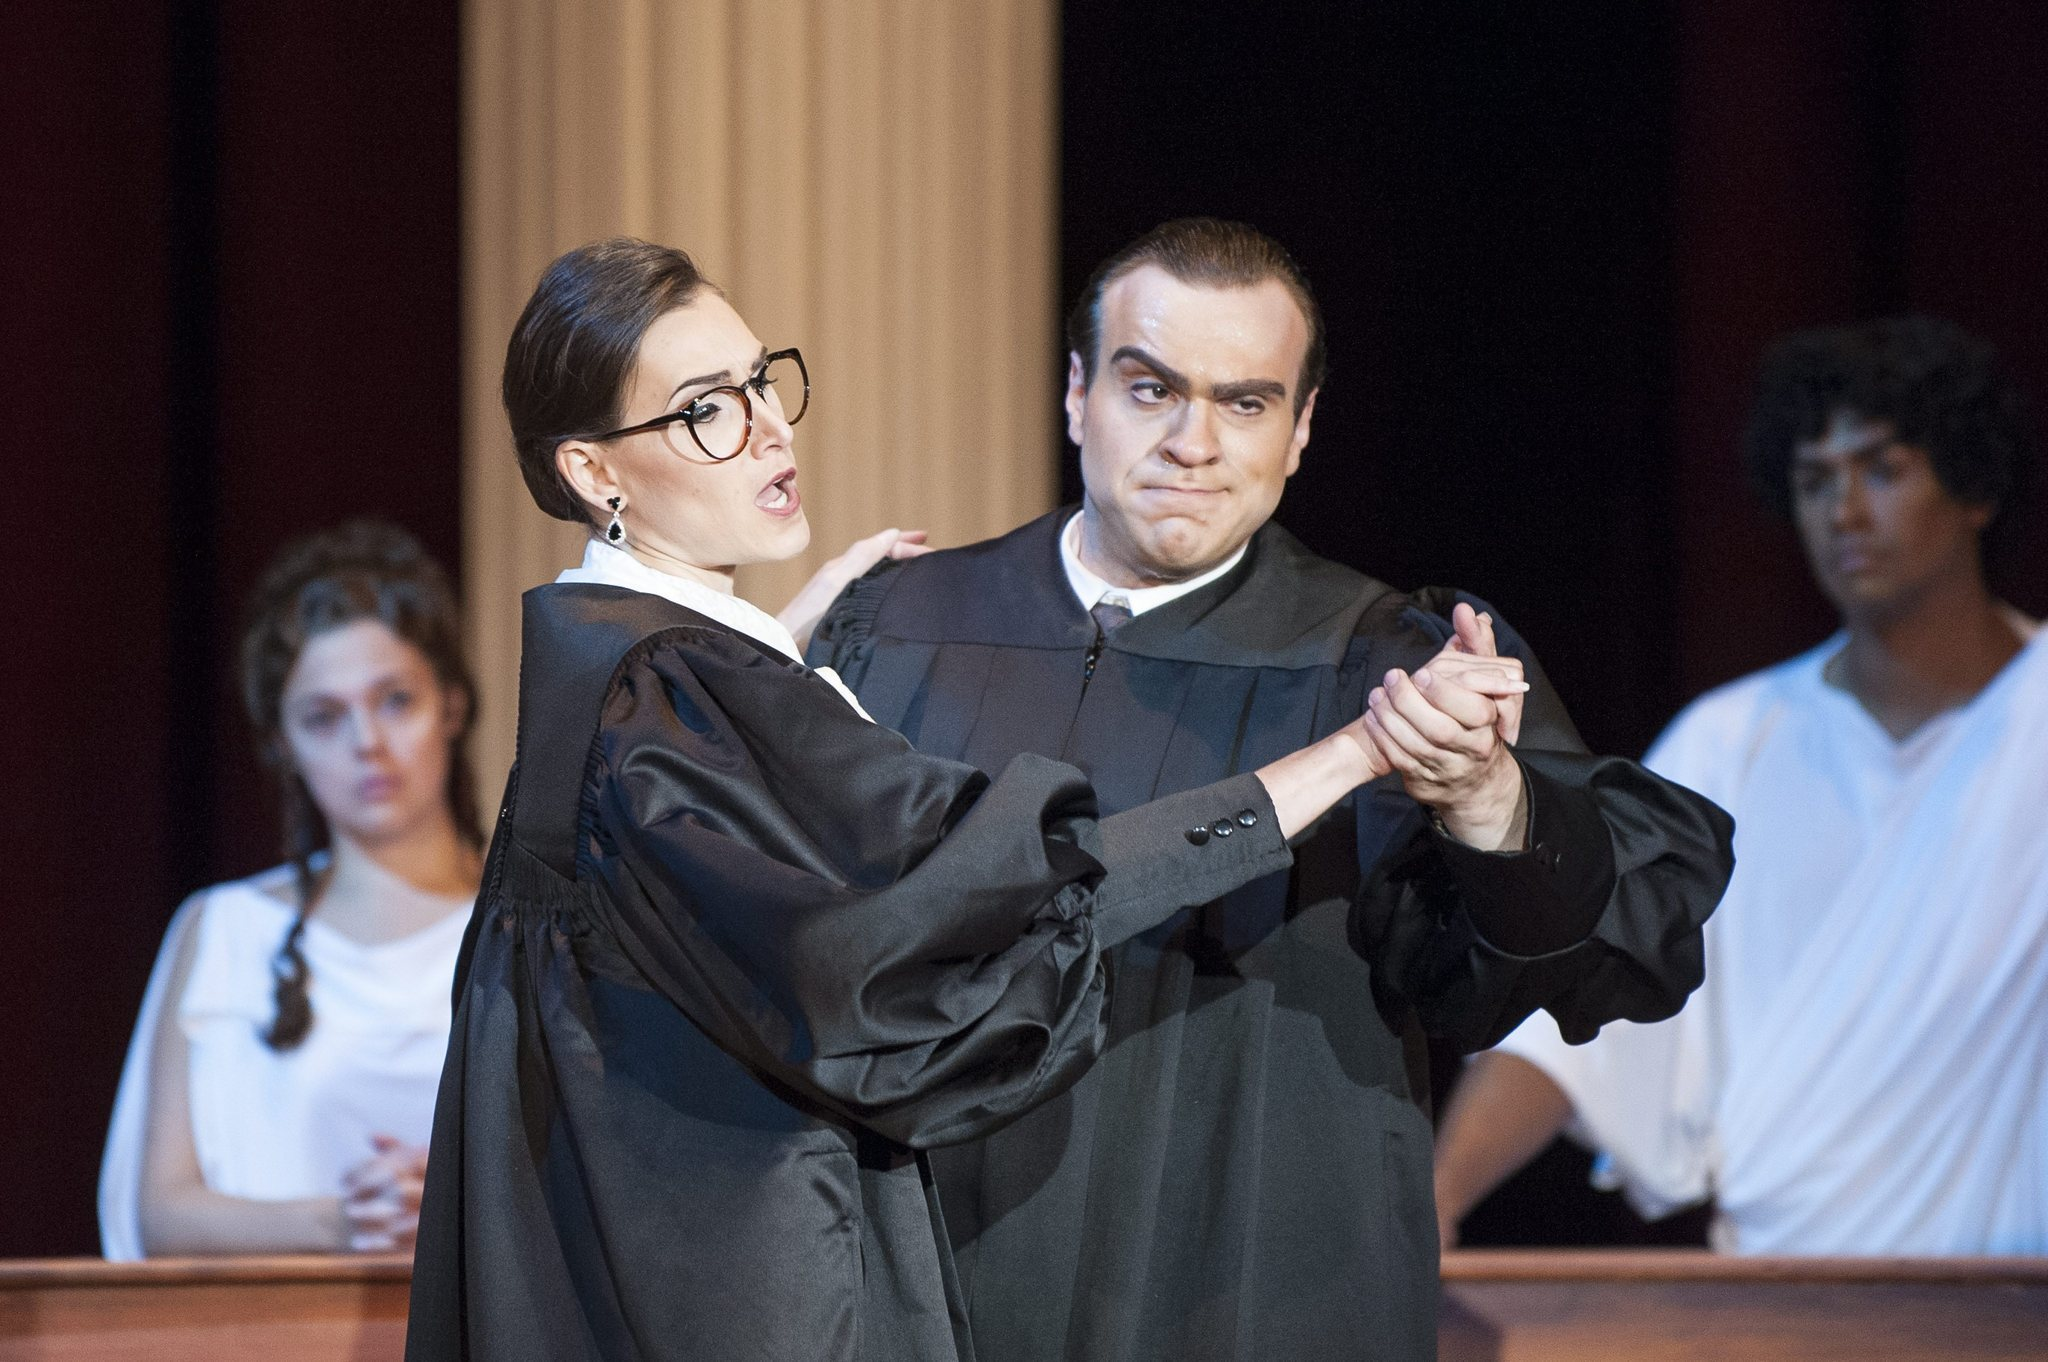 This is your reminder that there is an opera about Scalia and Ginsburg. This is a still from said opera. We live in the best of all possible worlds.